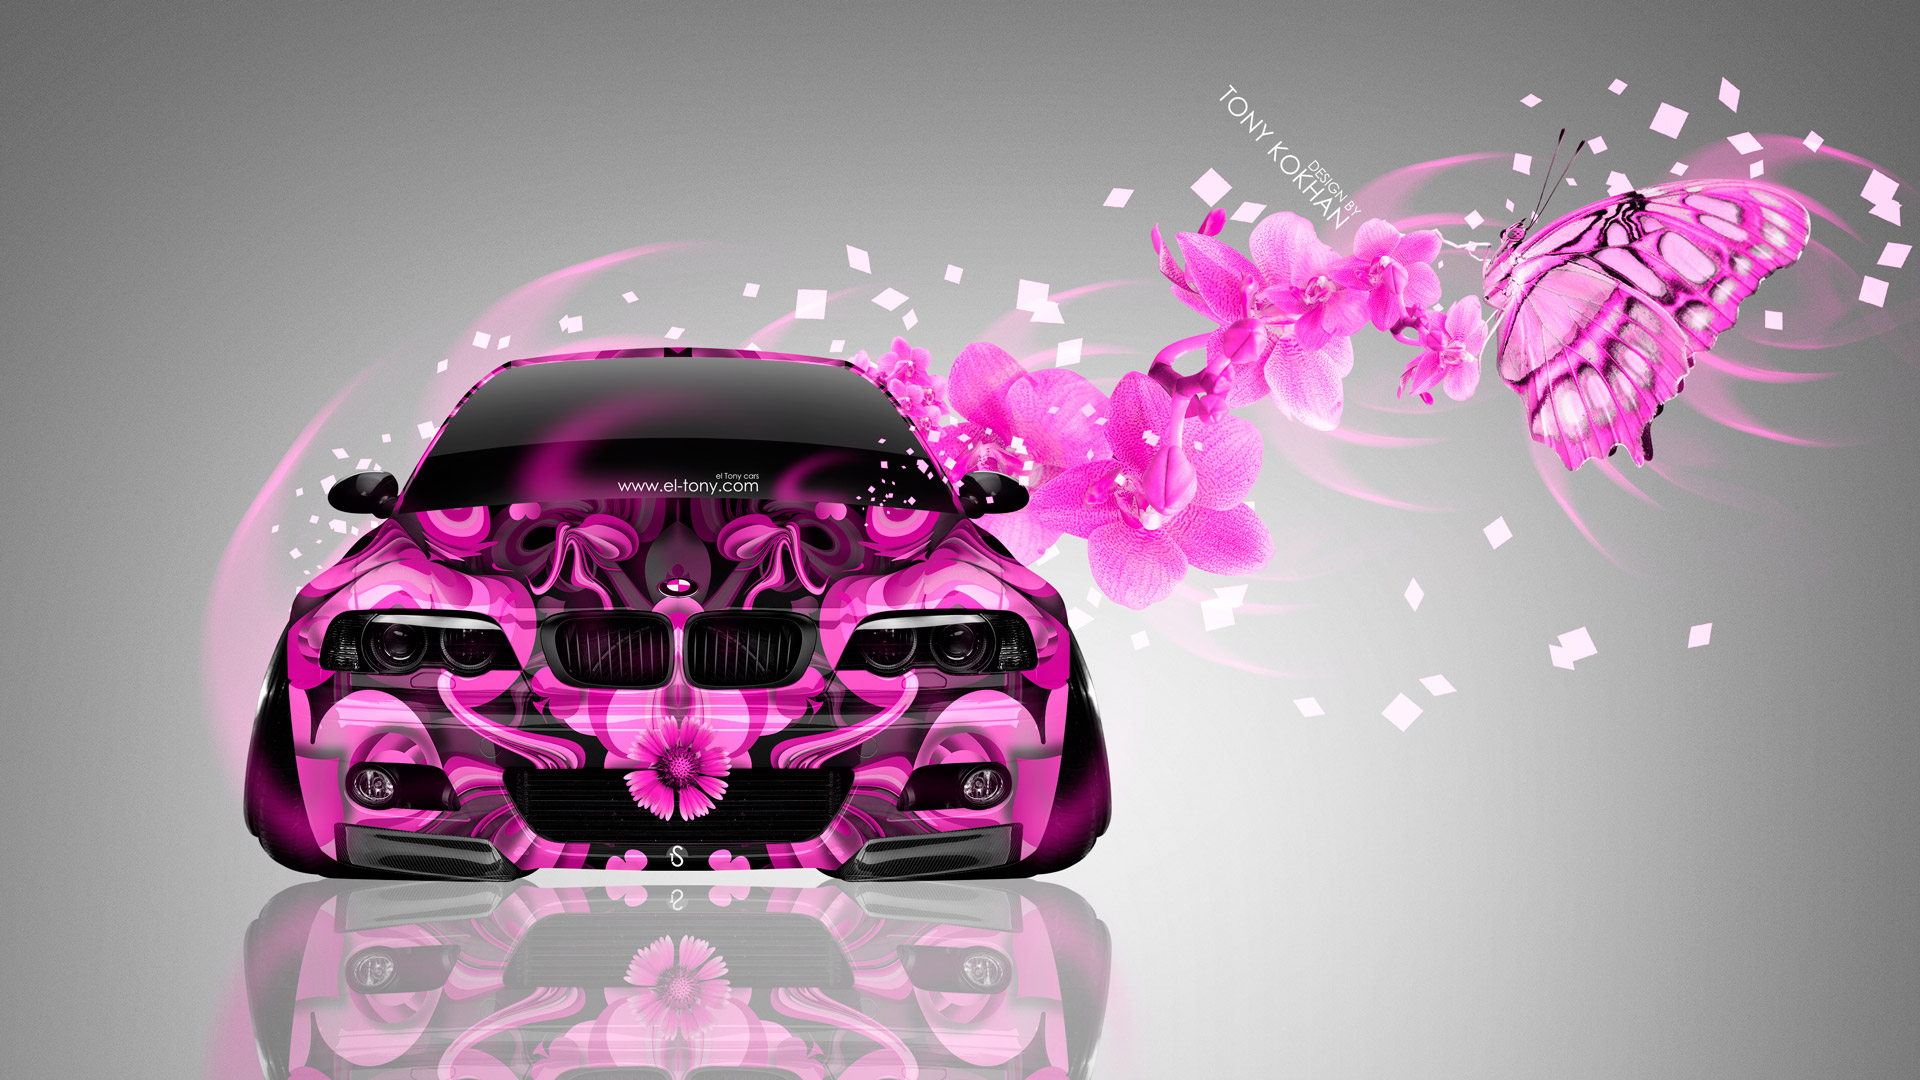 Bmw M3 E46 Front Fantasy Flowers Butterfly Car 2014 El Tony